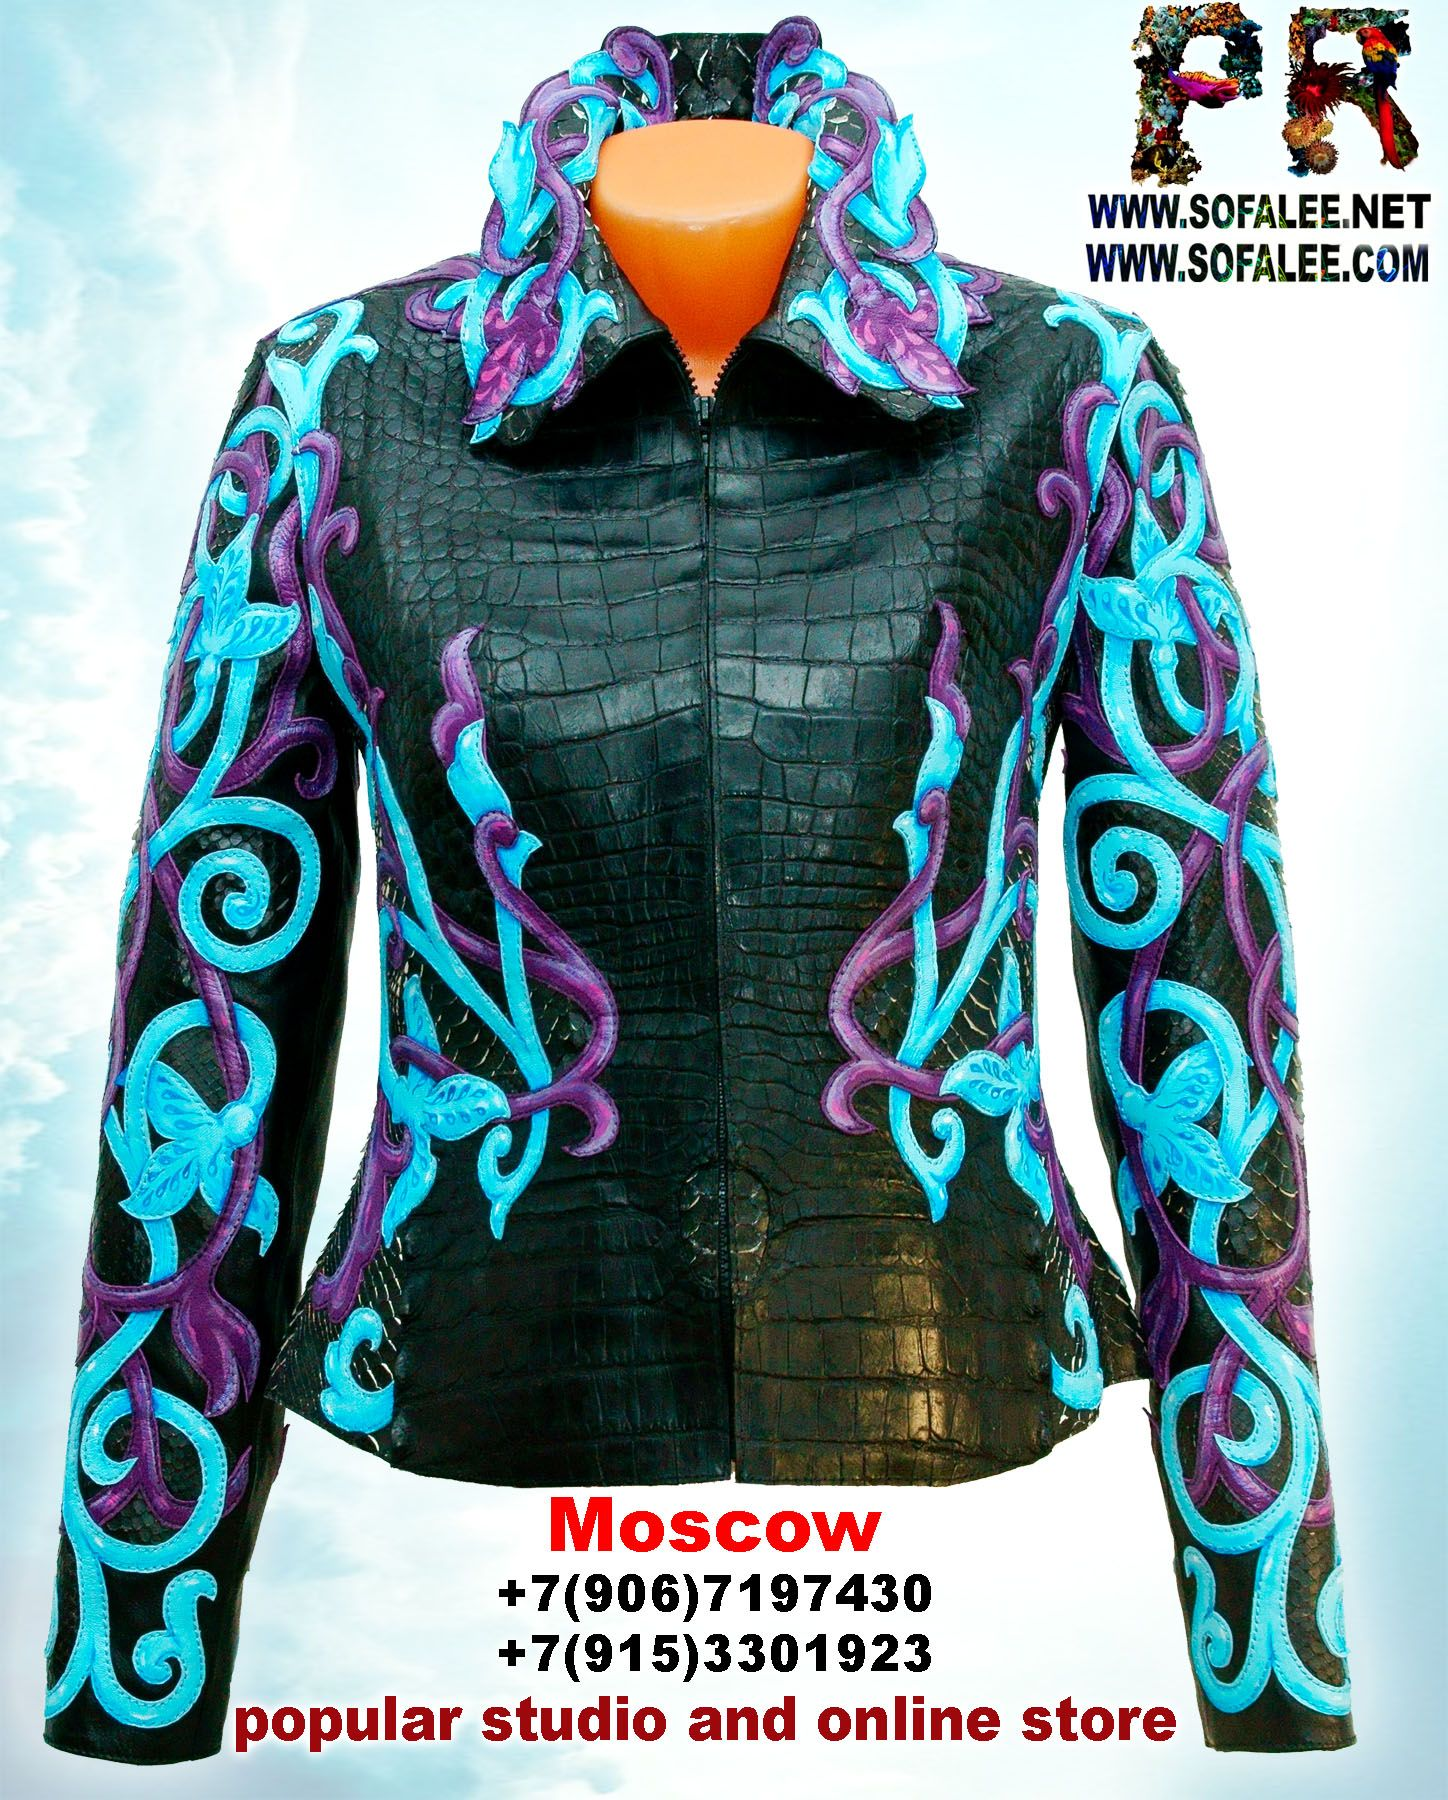 """Luxe leather crocodile python hide jacket for ladies """"Tauretari"""" Exceptional elegant design leather jacket from crocodile python.Fascinating weaving plants. high-end embroidery! Hand-painted work of art! Nice looking combination of blue and black colors. Available. Size SM. Price $3993"""